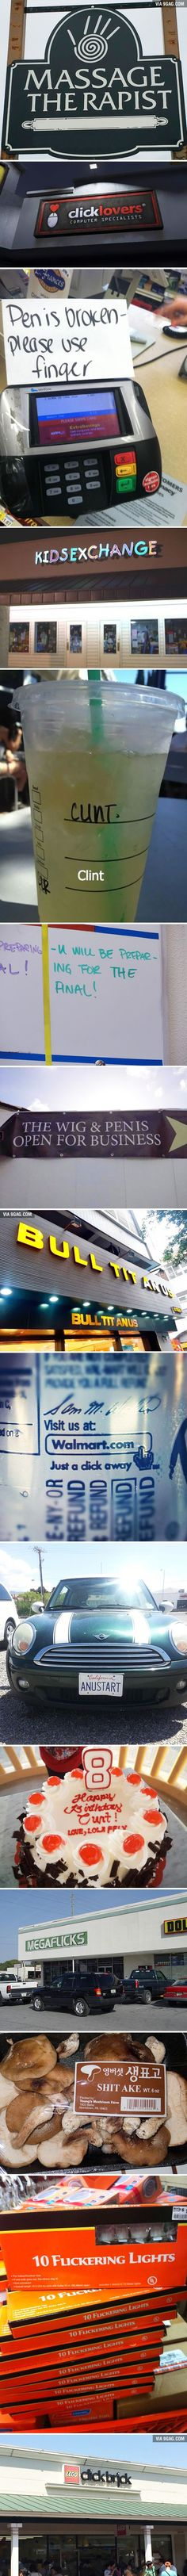 Bad letter spacing made all the difference for signs and other writing. #9Gag #funny